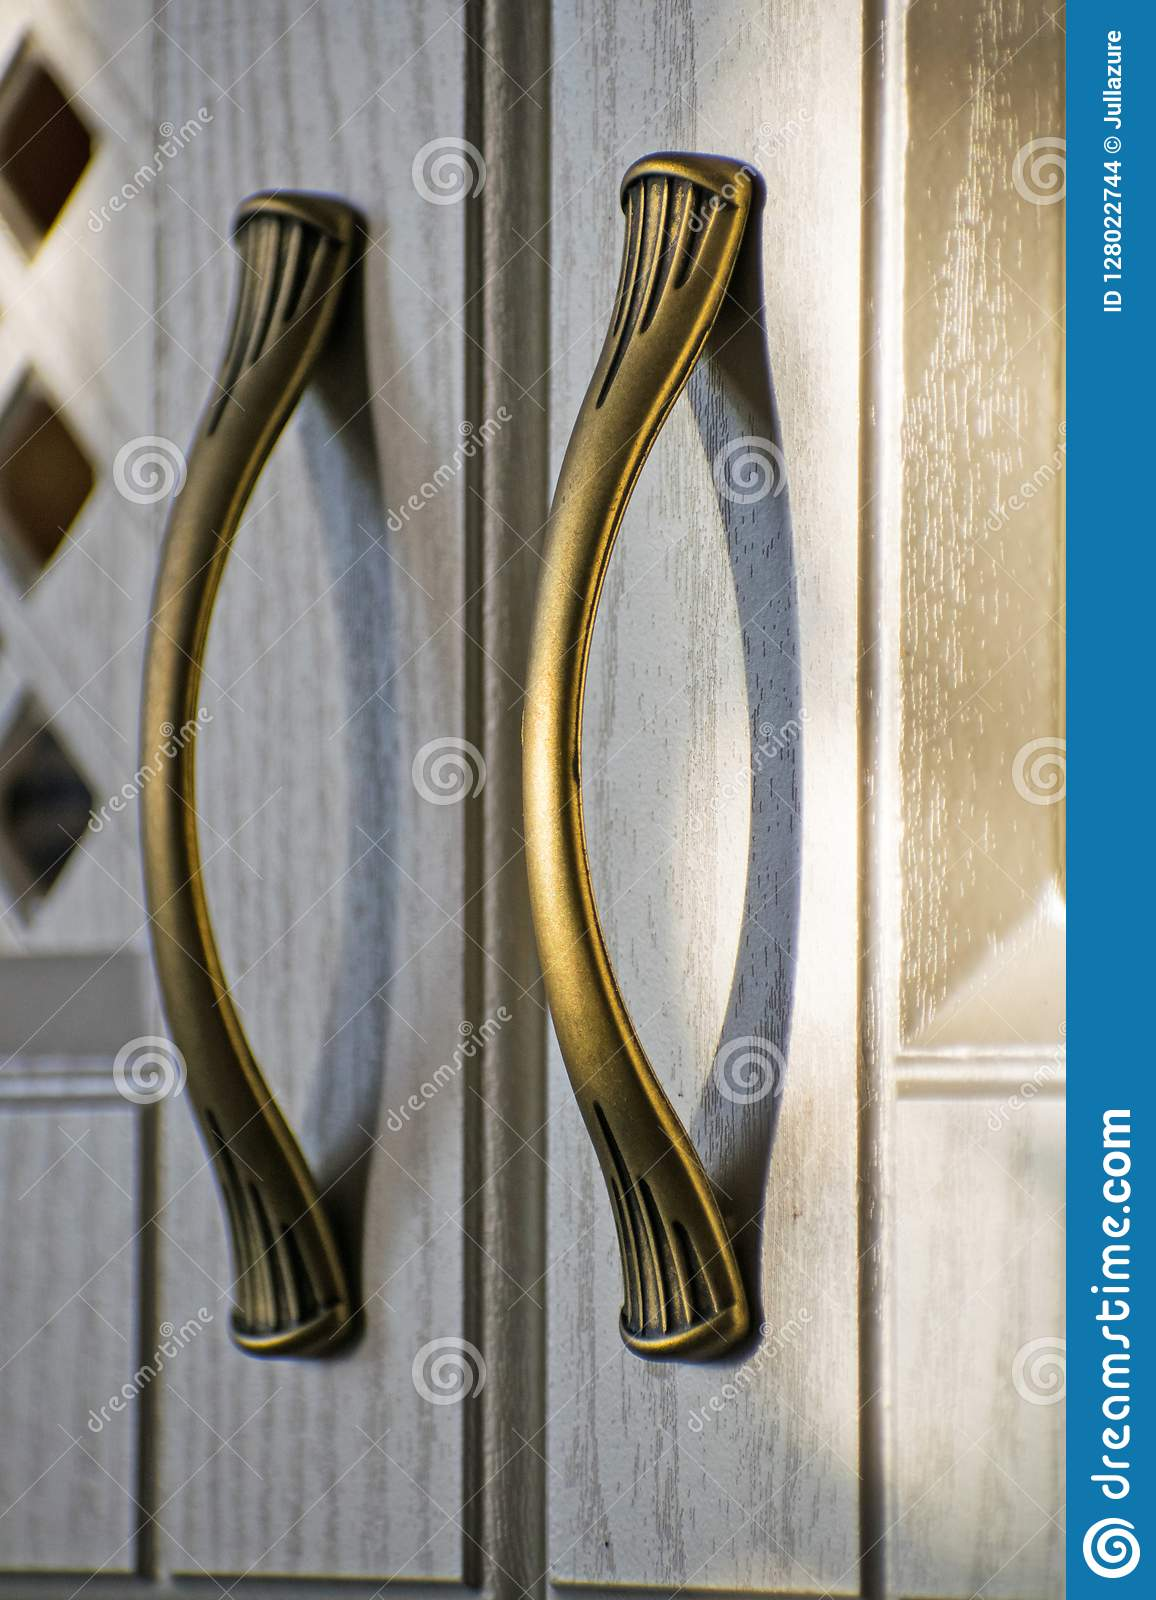 Image of: Retro Handles Metal Cabinet In The Kitchen Kitchen Cabinet Handle On Stock Photo Image Of Modern Antique 128022744